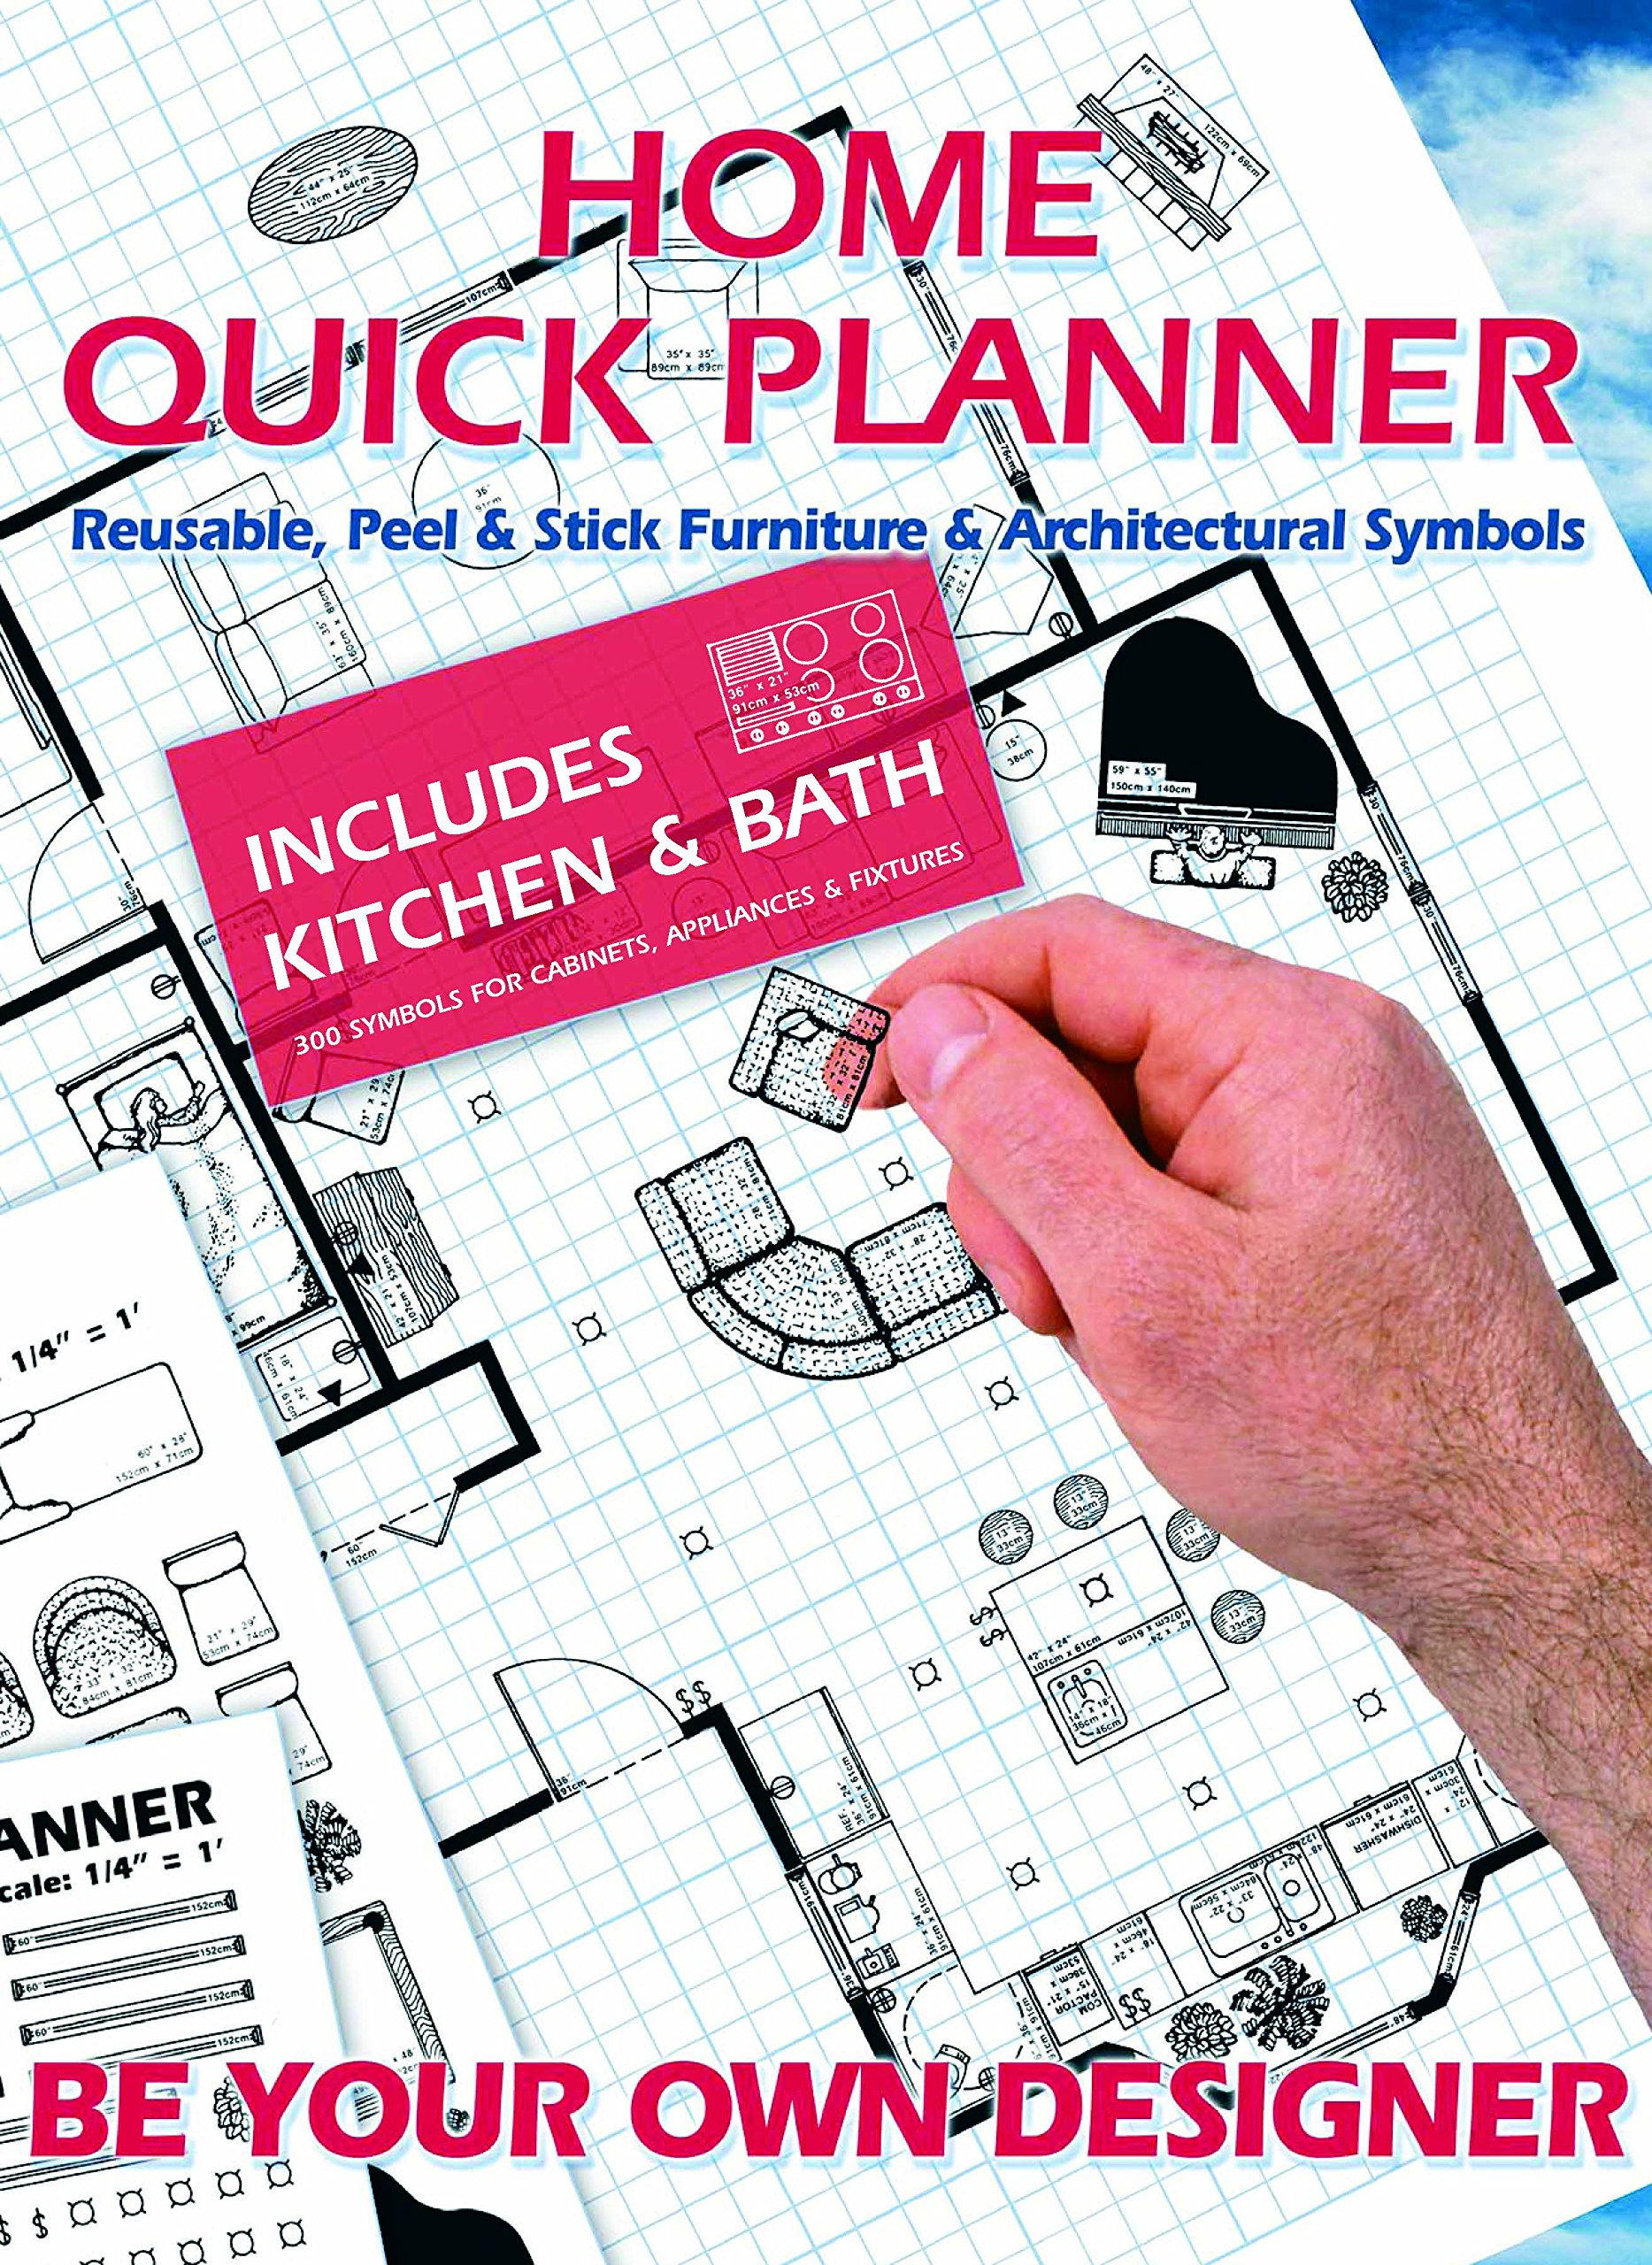 Home Quick Planner: Reusable, Peel & Stick Furniture & Architectural Symbols